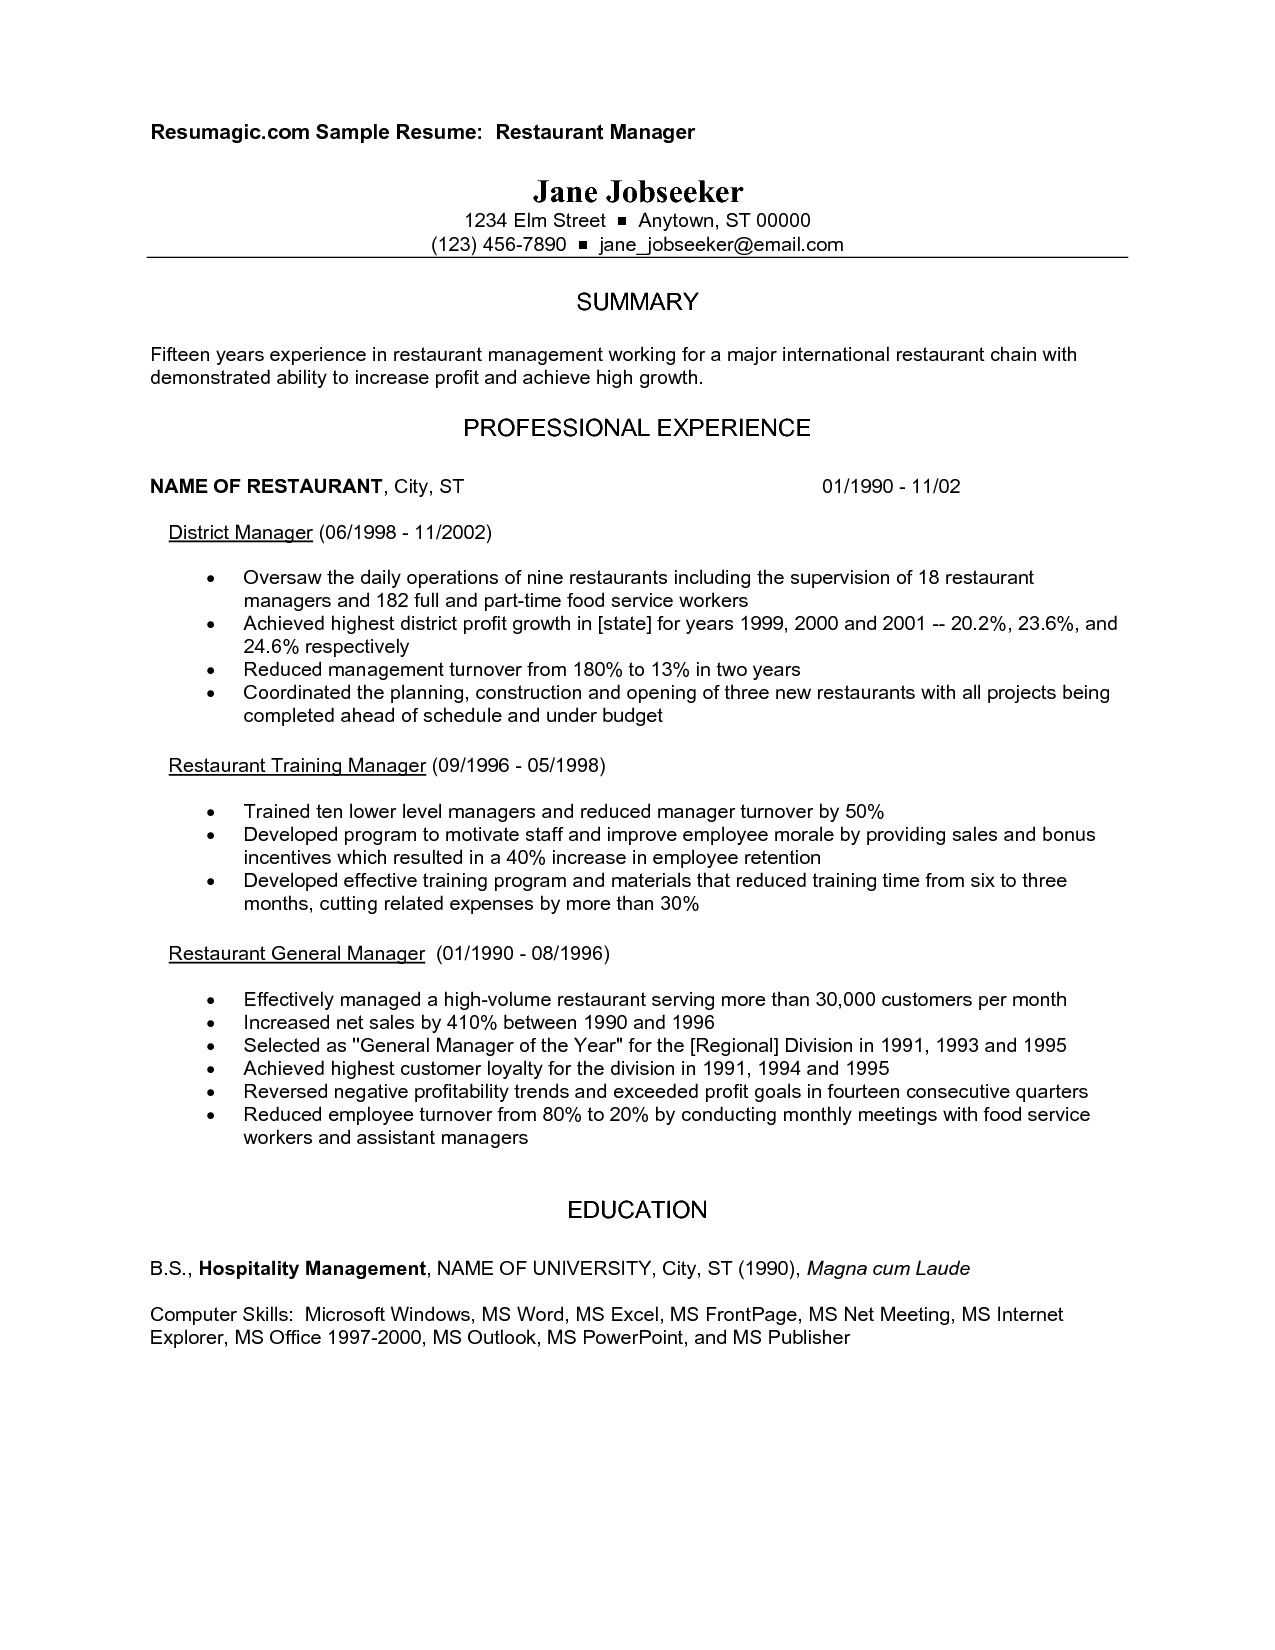 fields related food service manager sample cover letter for resume objective examples fast paced environment environmental science best free home